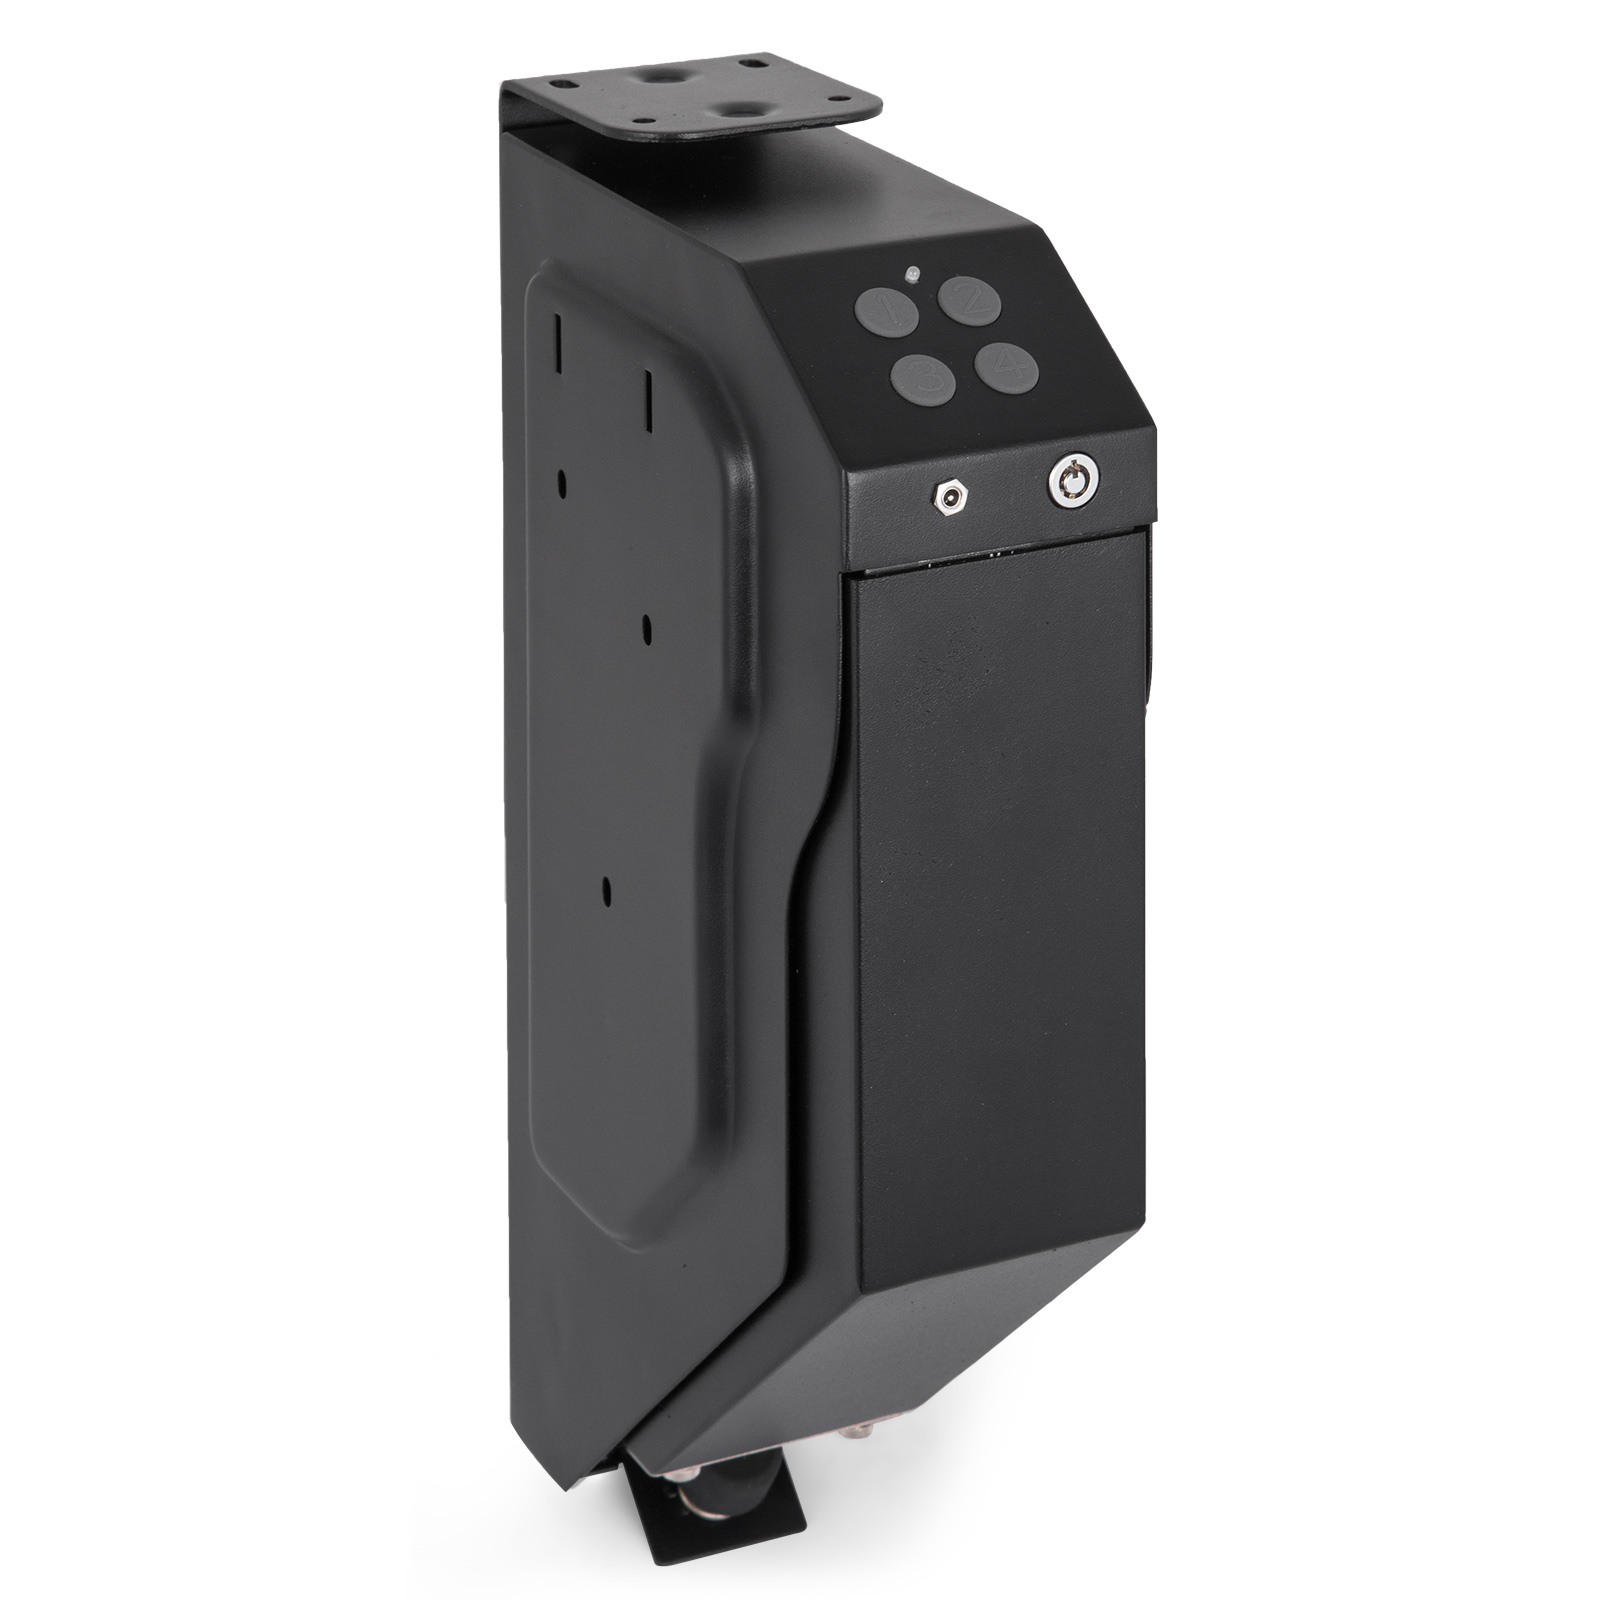 Gun-Safe-Pistol-Handgun-Safe-Single-Quick-Access-Electronic-Security-Keypad-Lock thumbnail 6